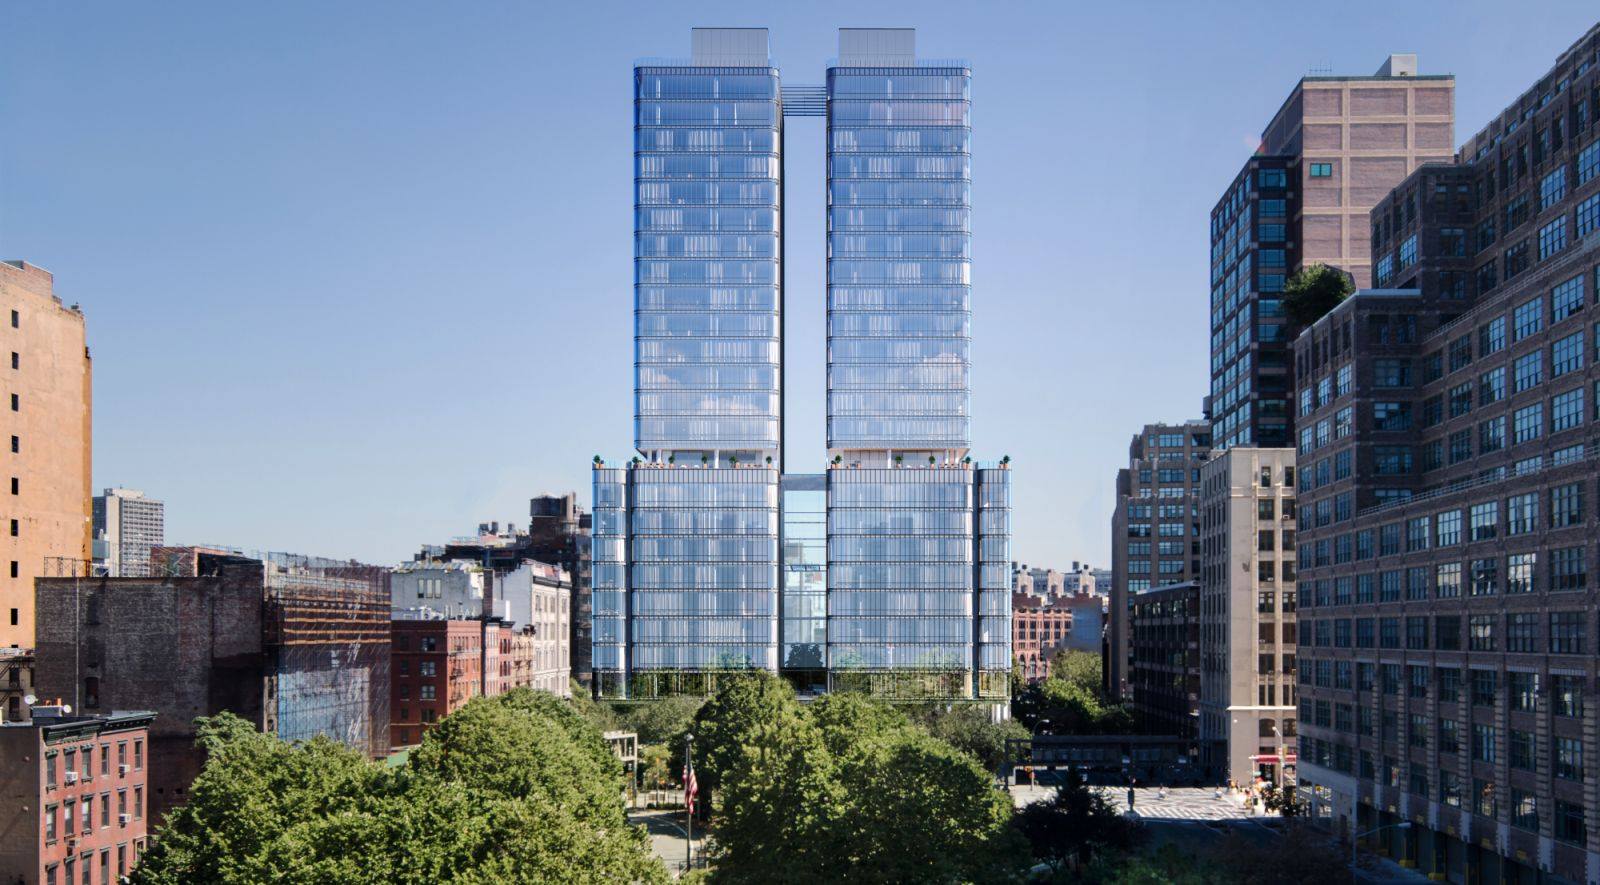 565 broome soho by renzo piano building workshop